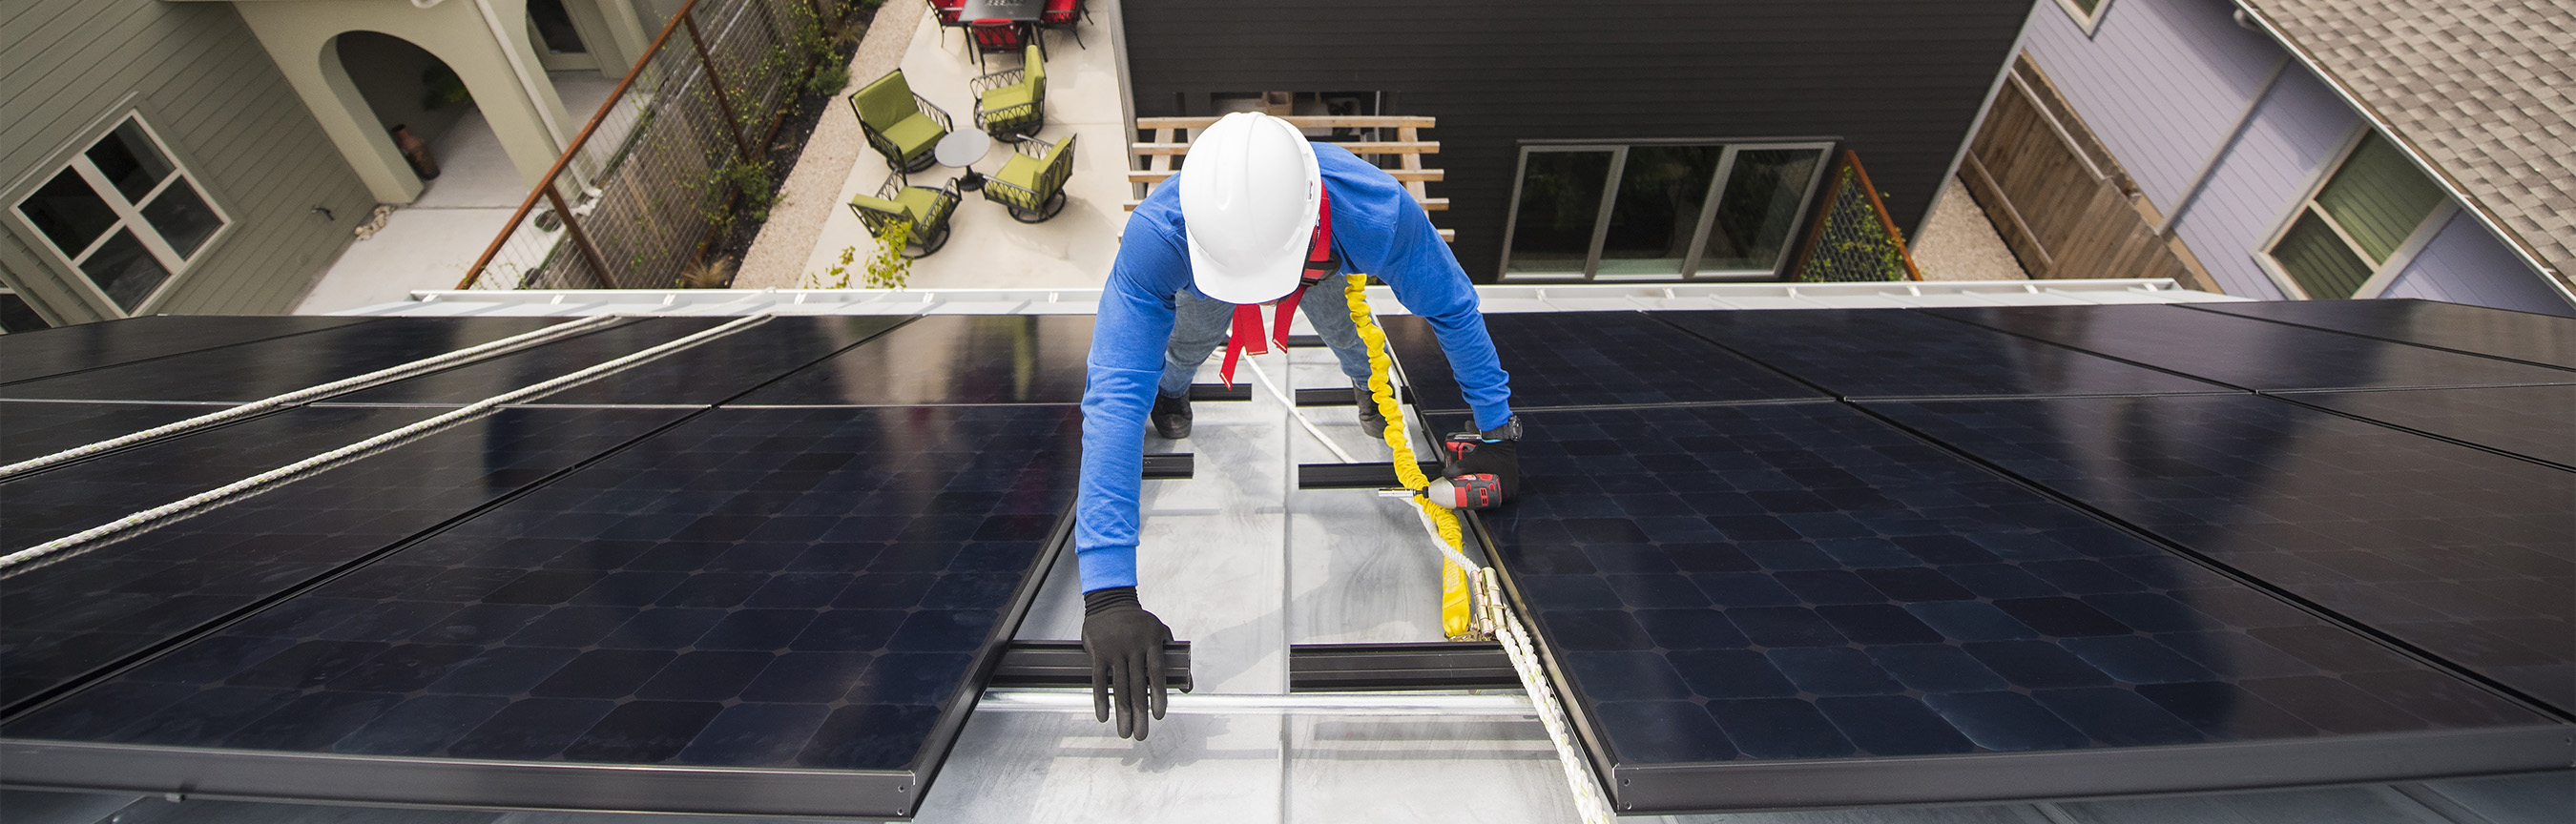 SunPower Closes Year with Industry's Lowest Solar Panel Degradation Rate